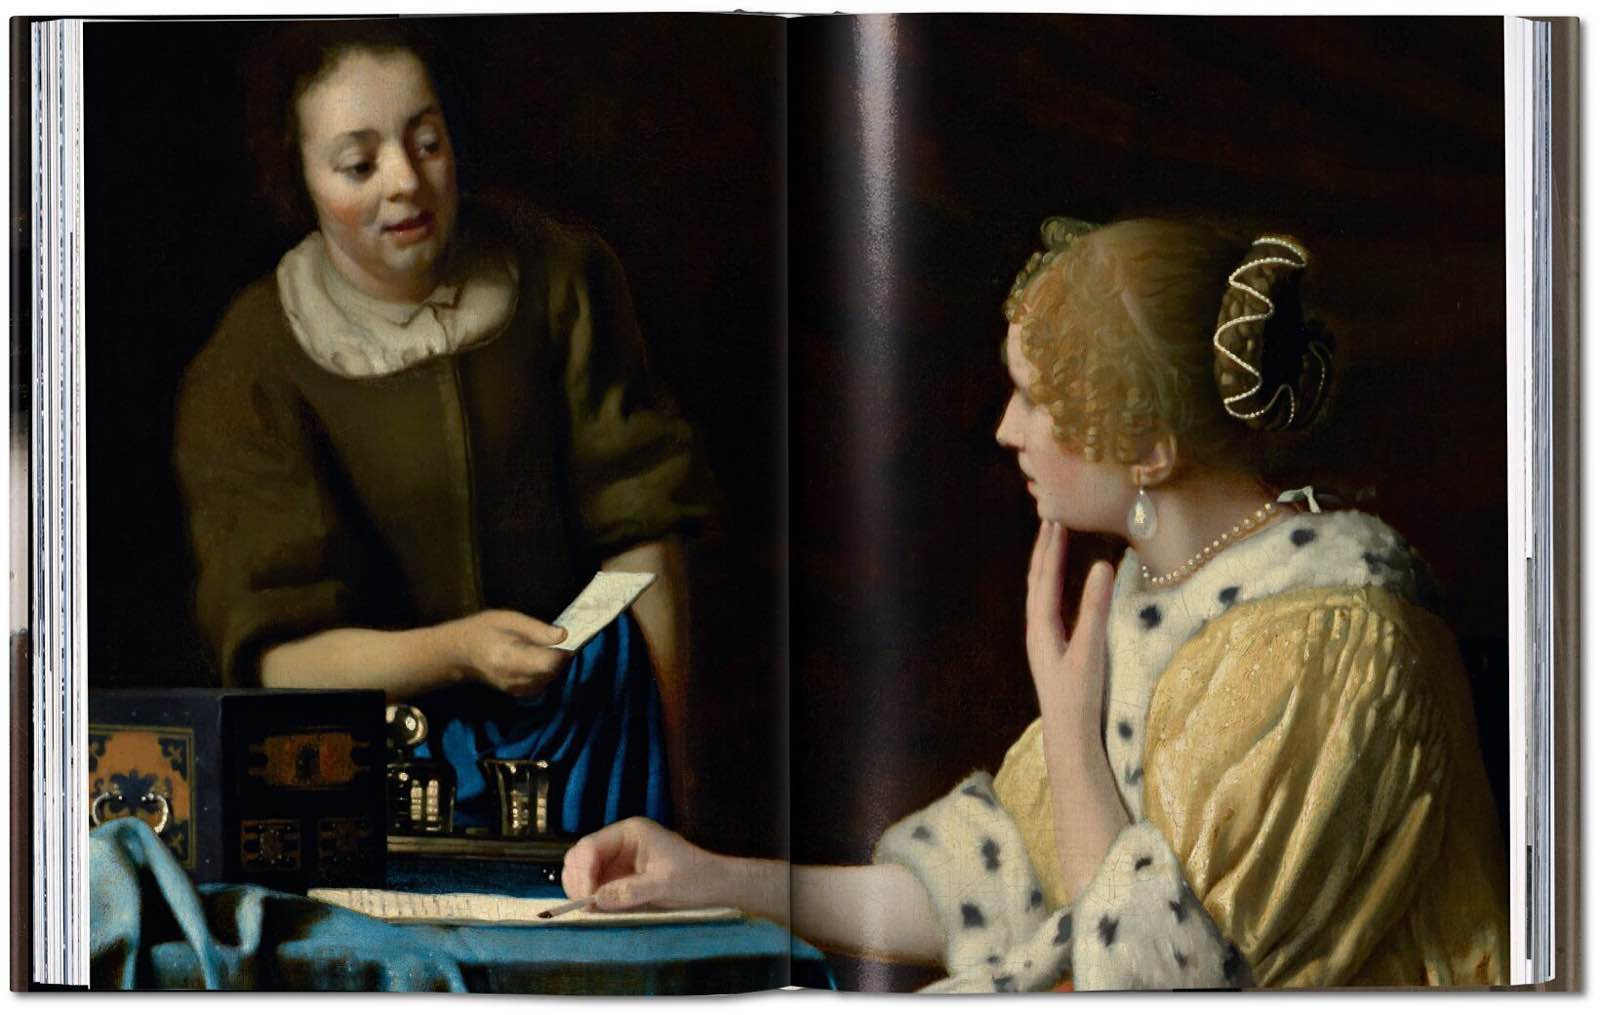 vermeer-the-complete-works-by-karl-schutz-and-taschen-2